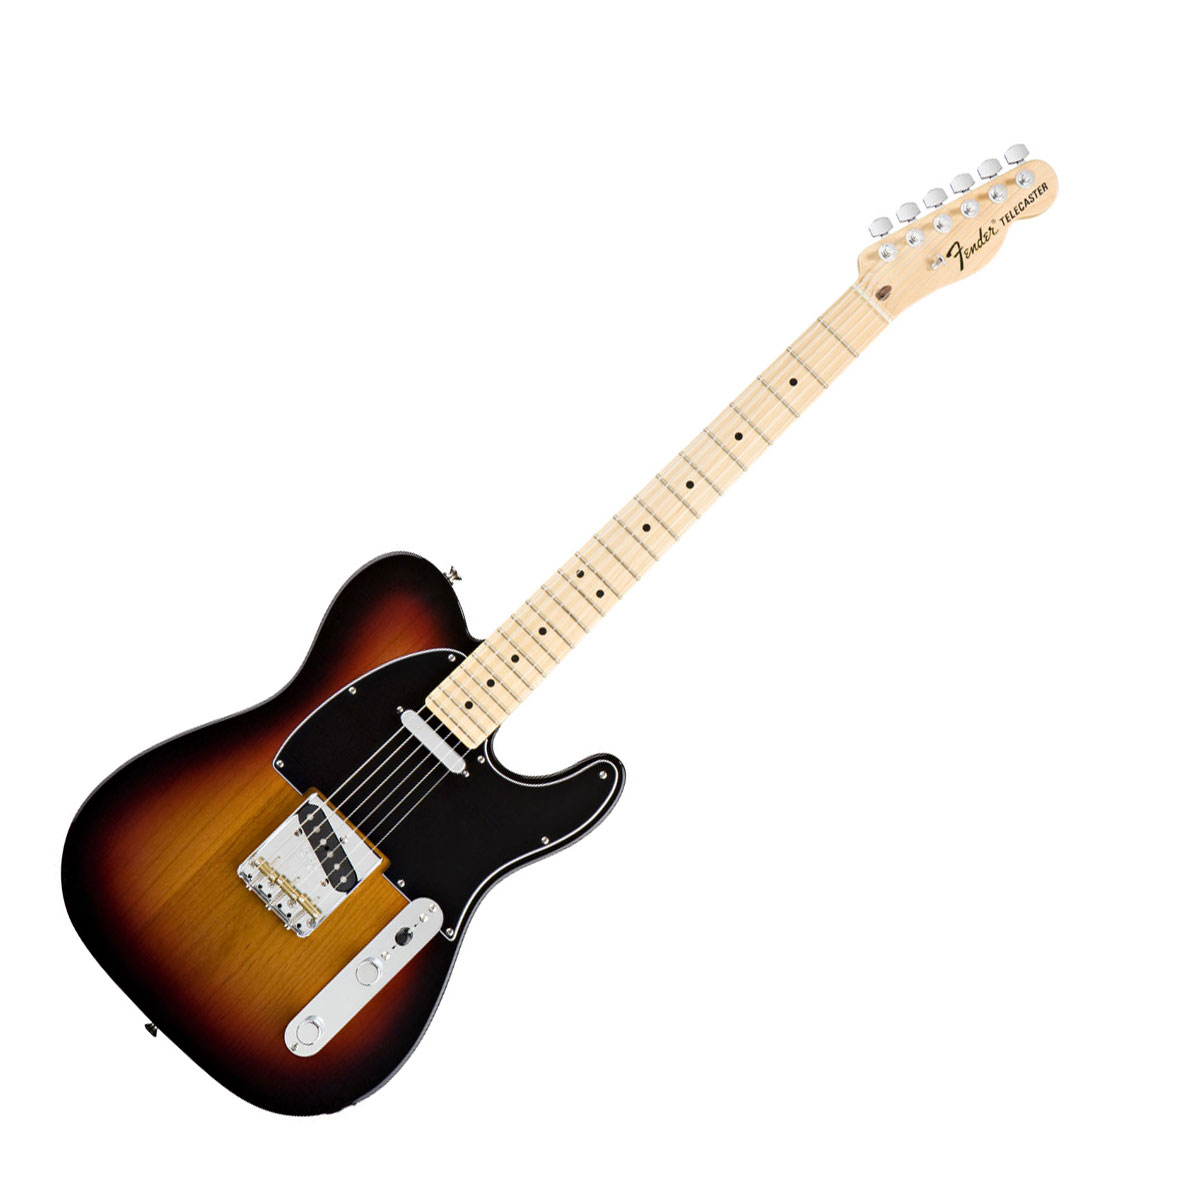 Gearfeel Reviews Fender American Special Telecaster Tone